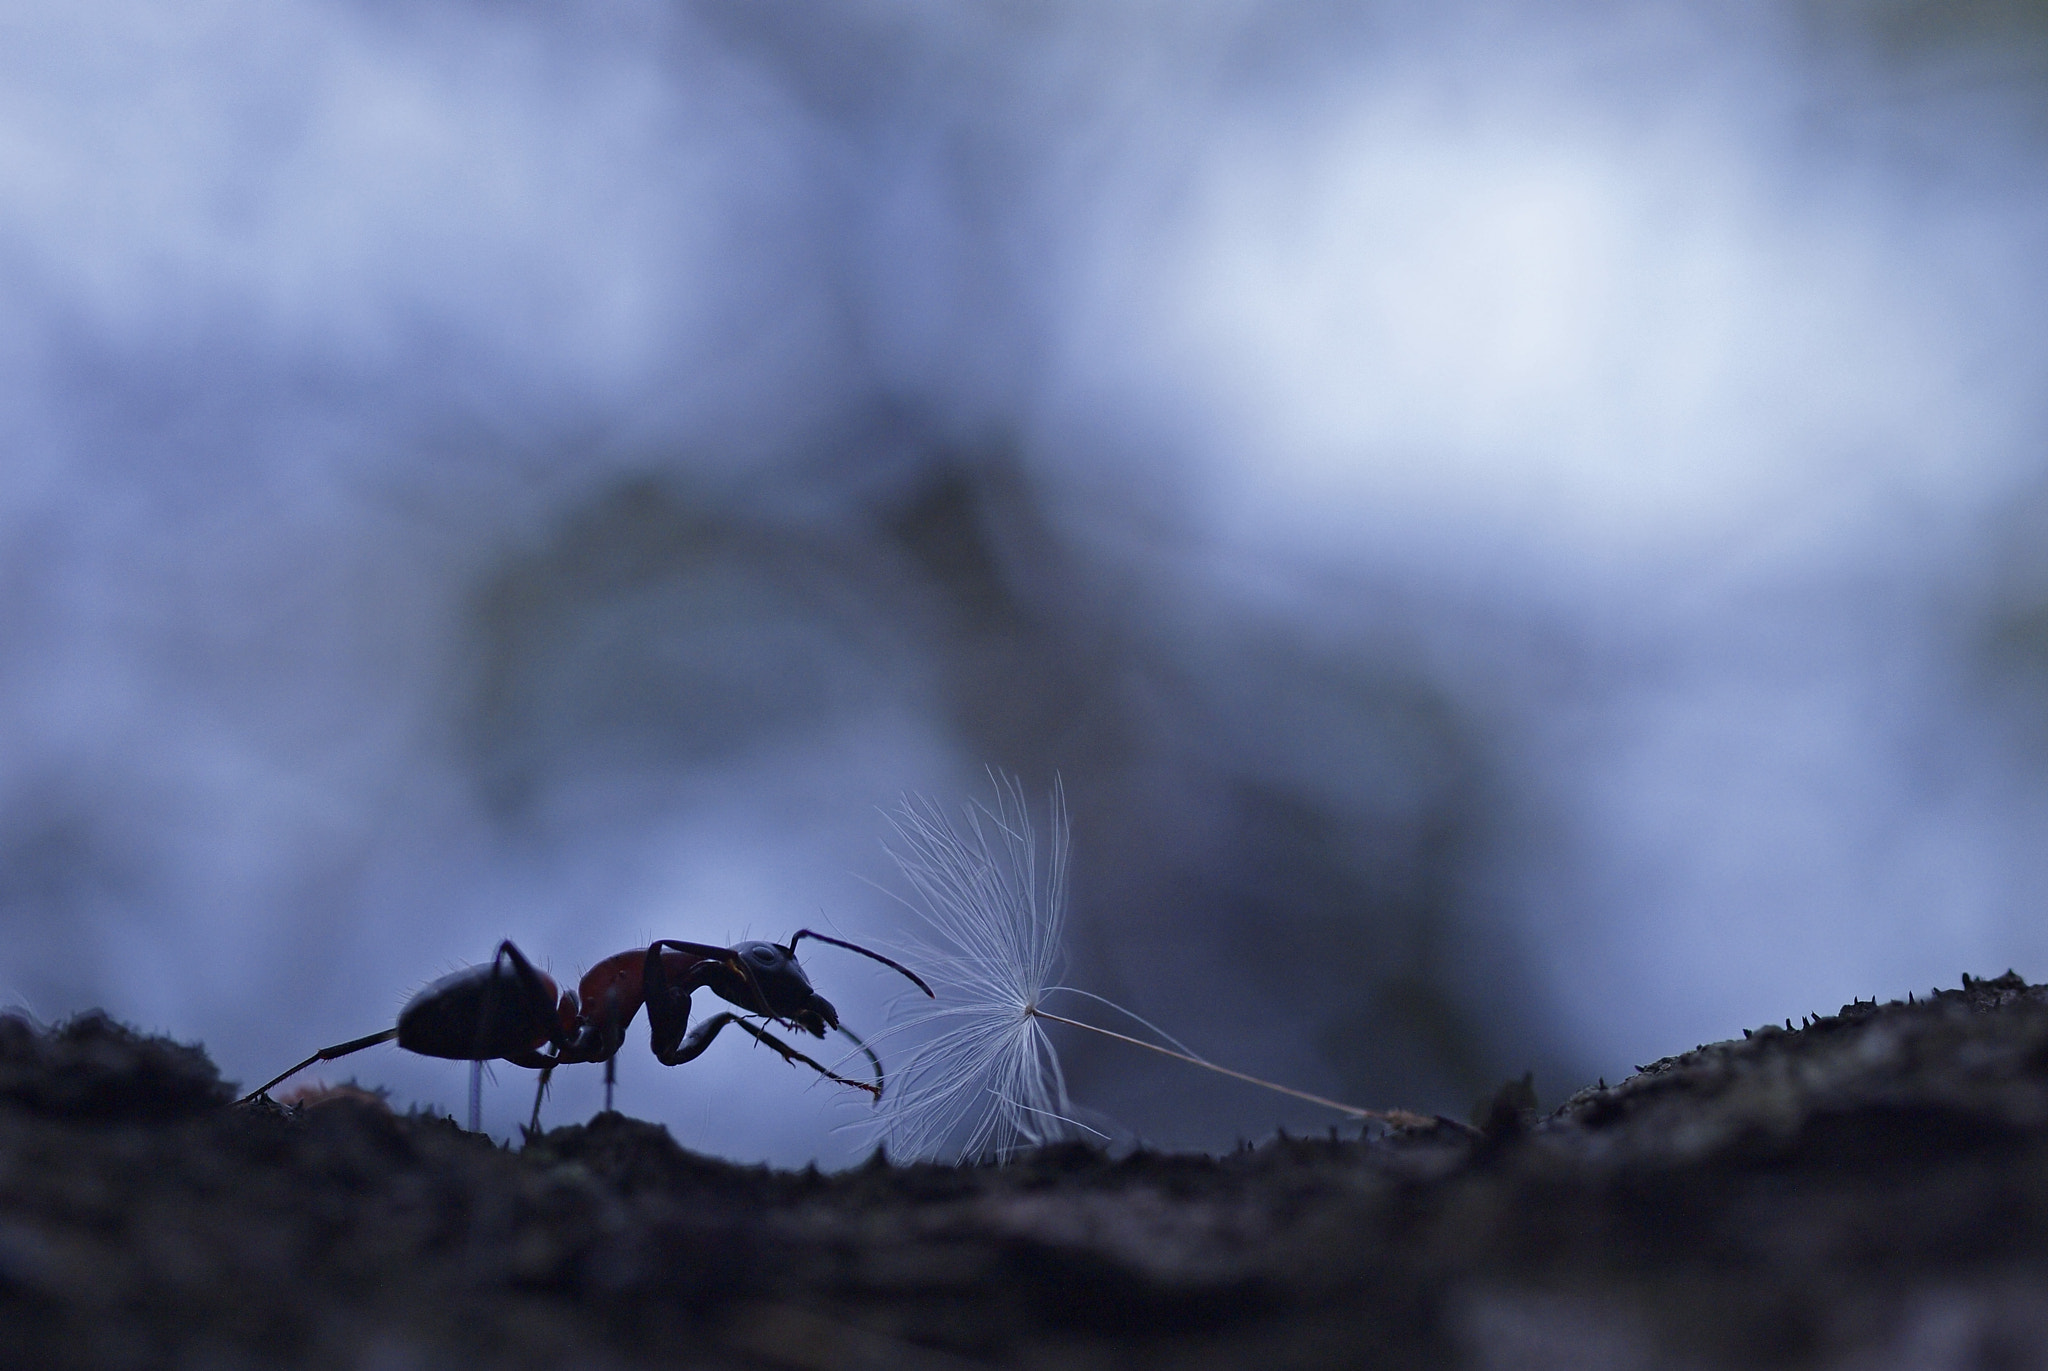 Photograph Fluff with ants by Haru Digital phot on 500px